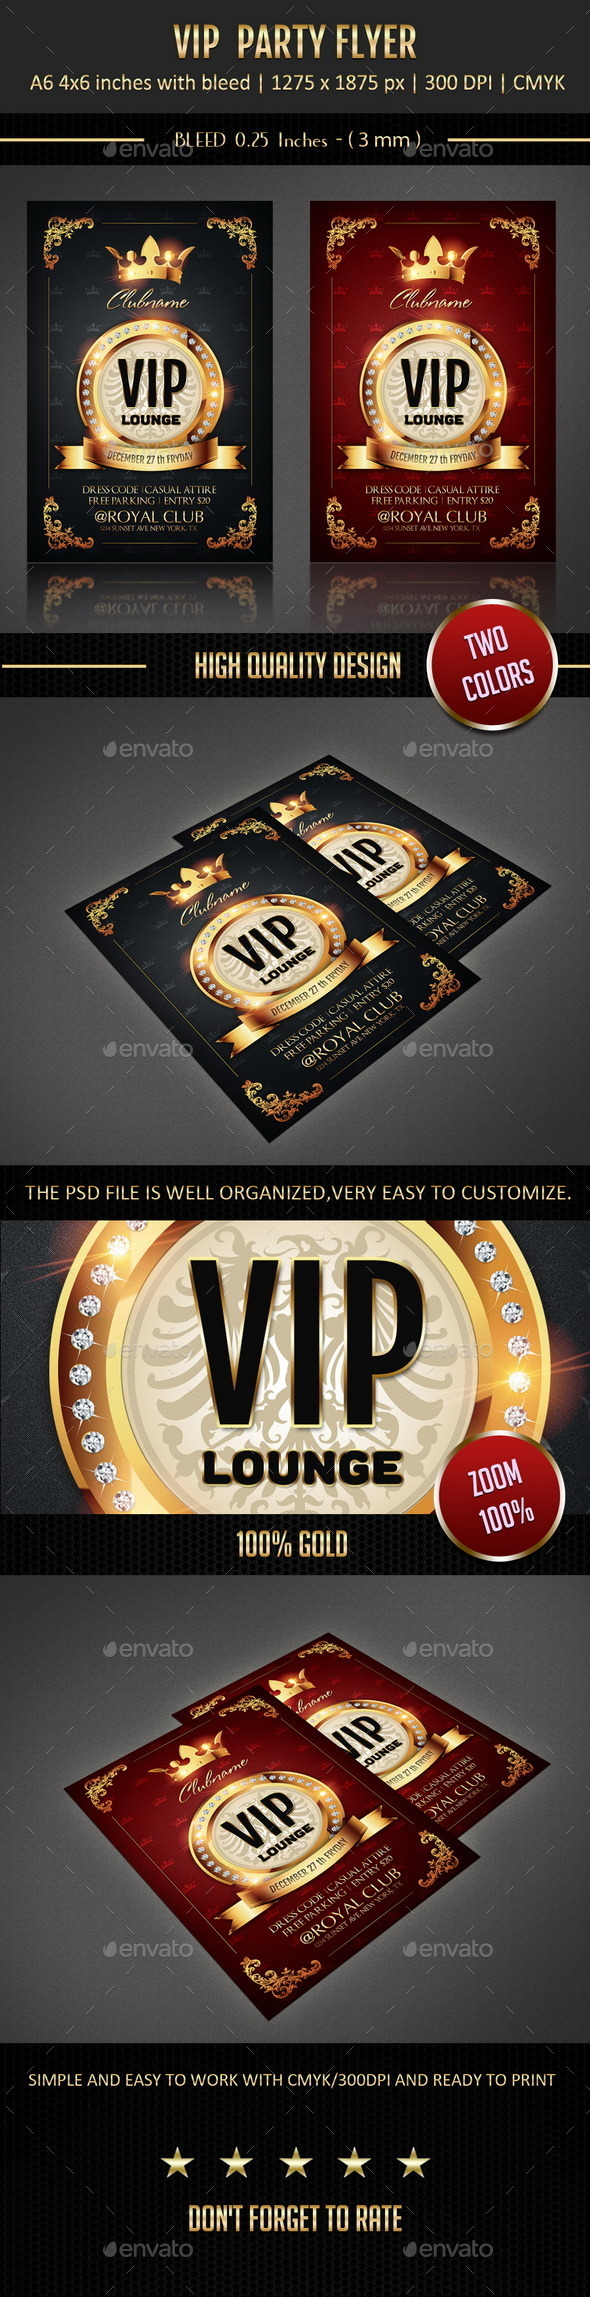 GraphicRiver Vip Party Flyer 9559088